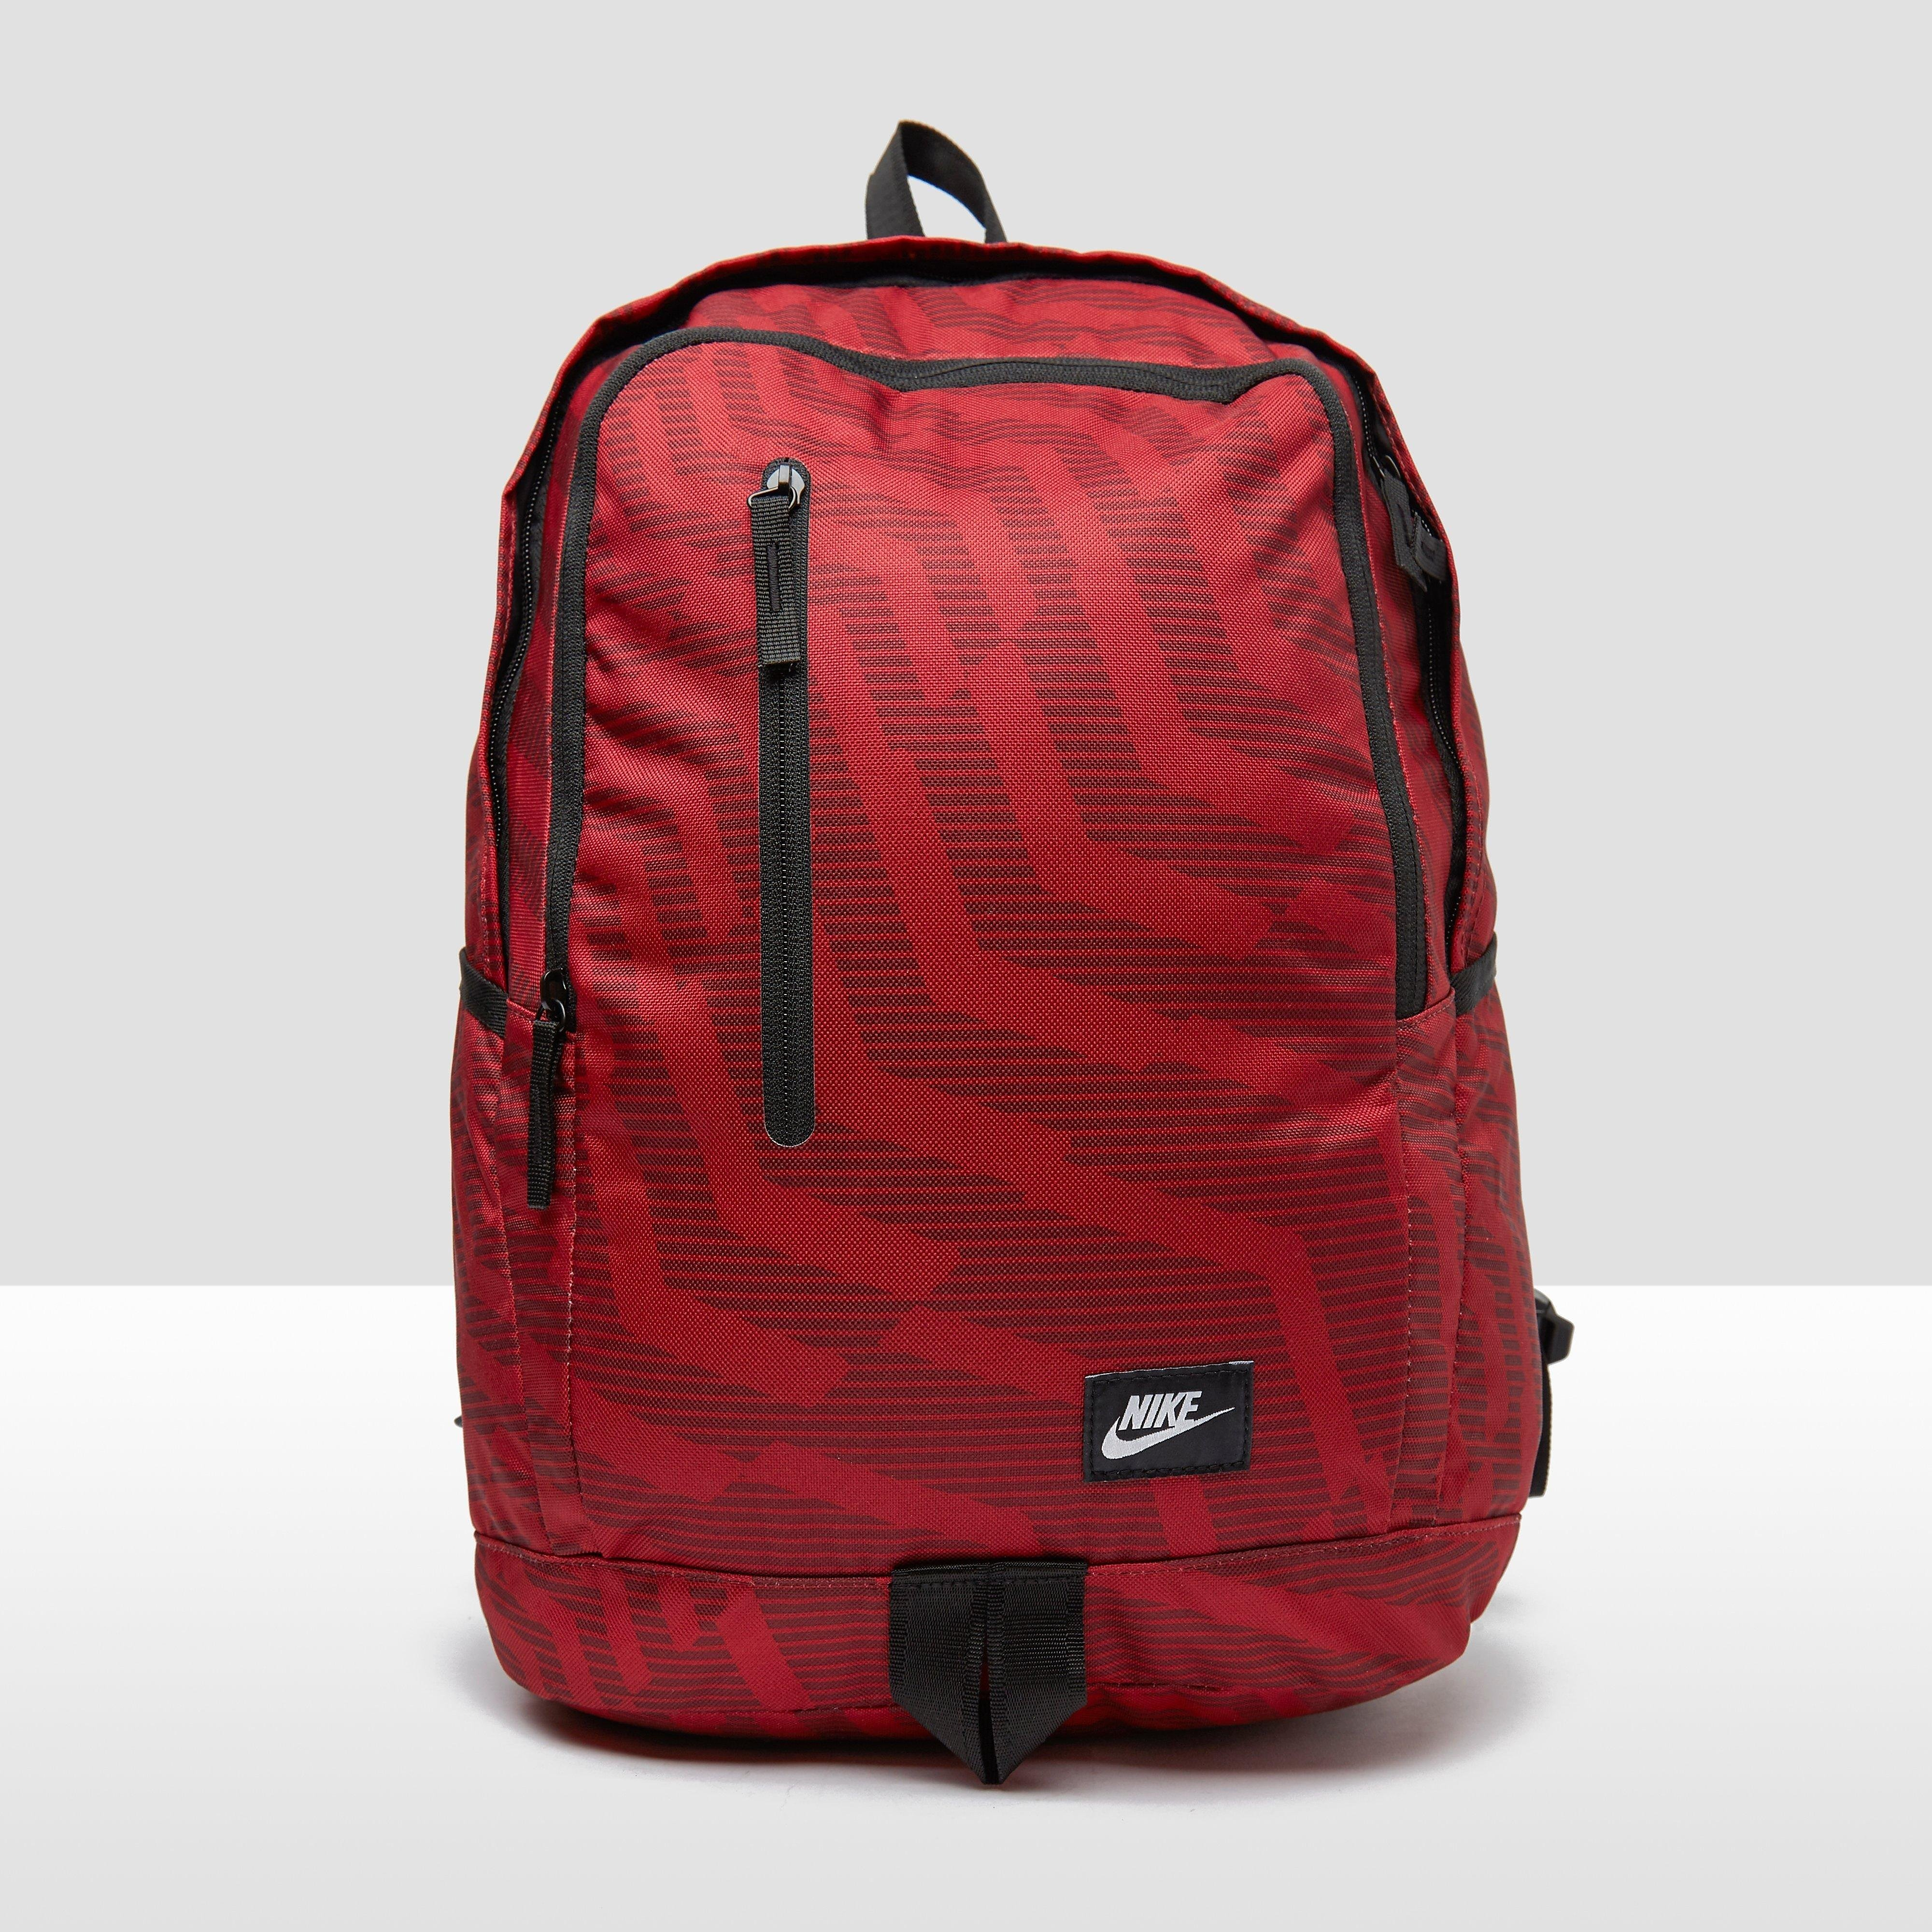 NIKE ALL ACCESS SOLEDAY RUGZAK ROOD